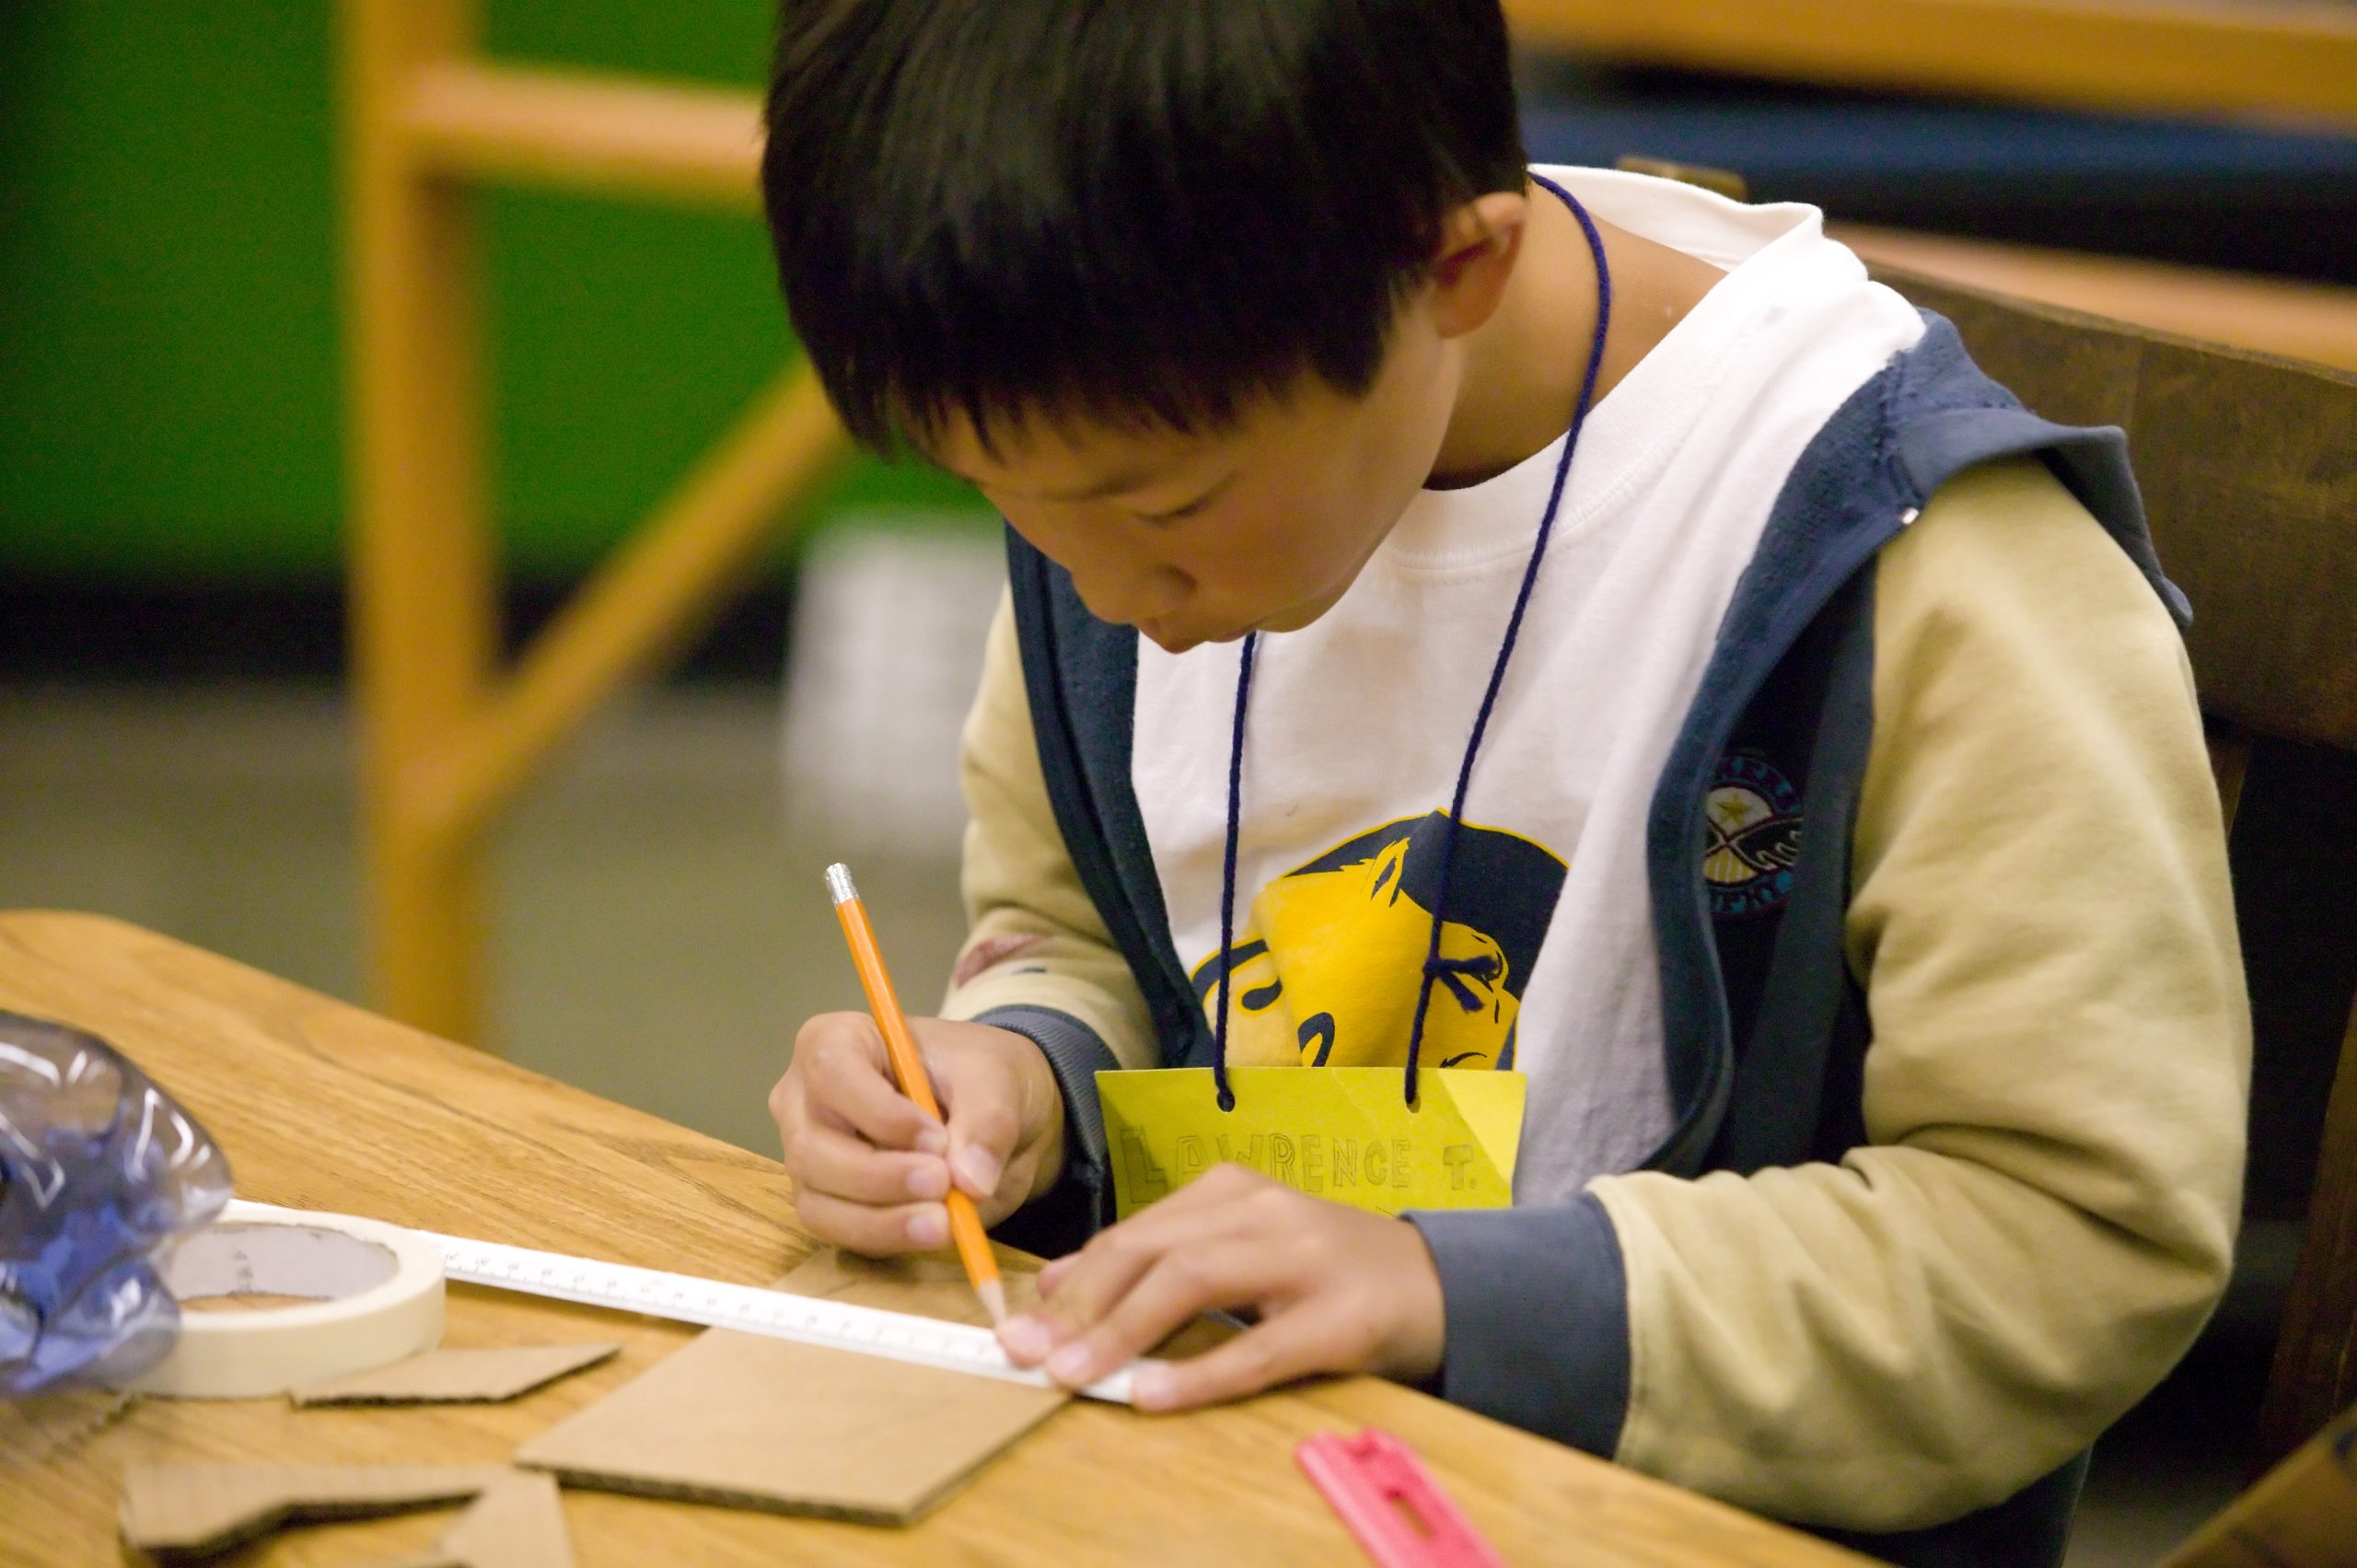 A student drawing a line with a ruler